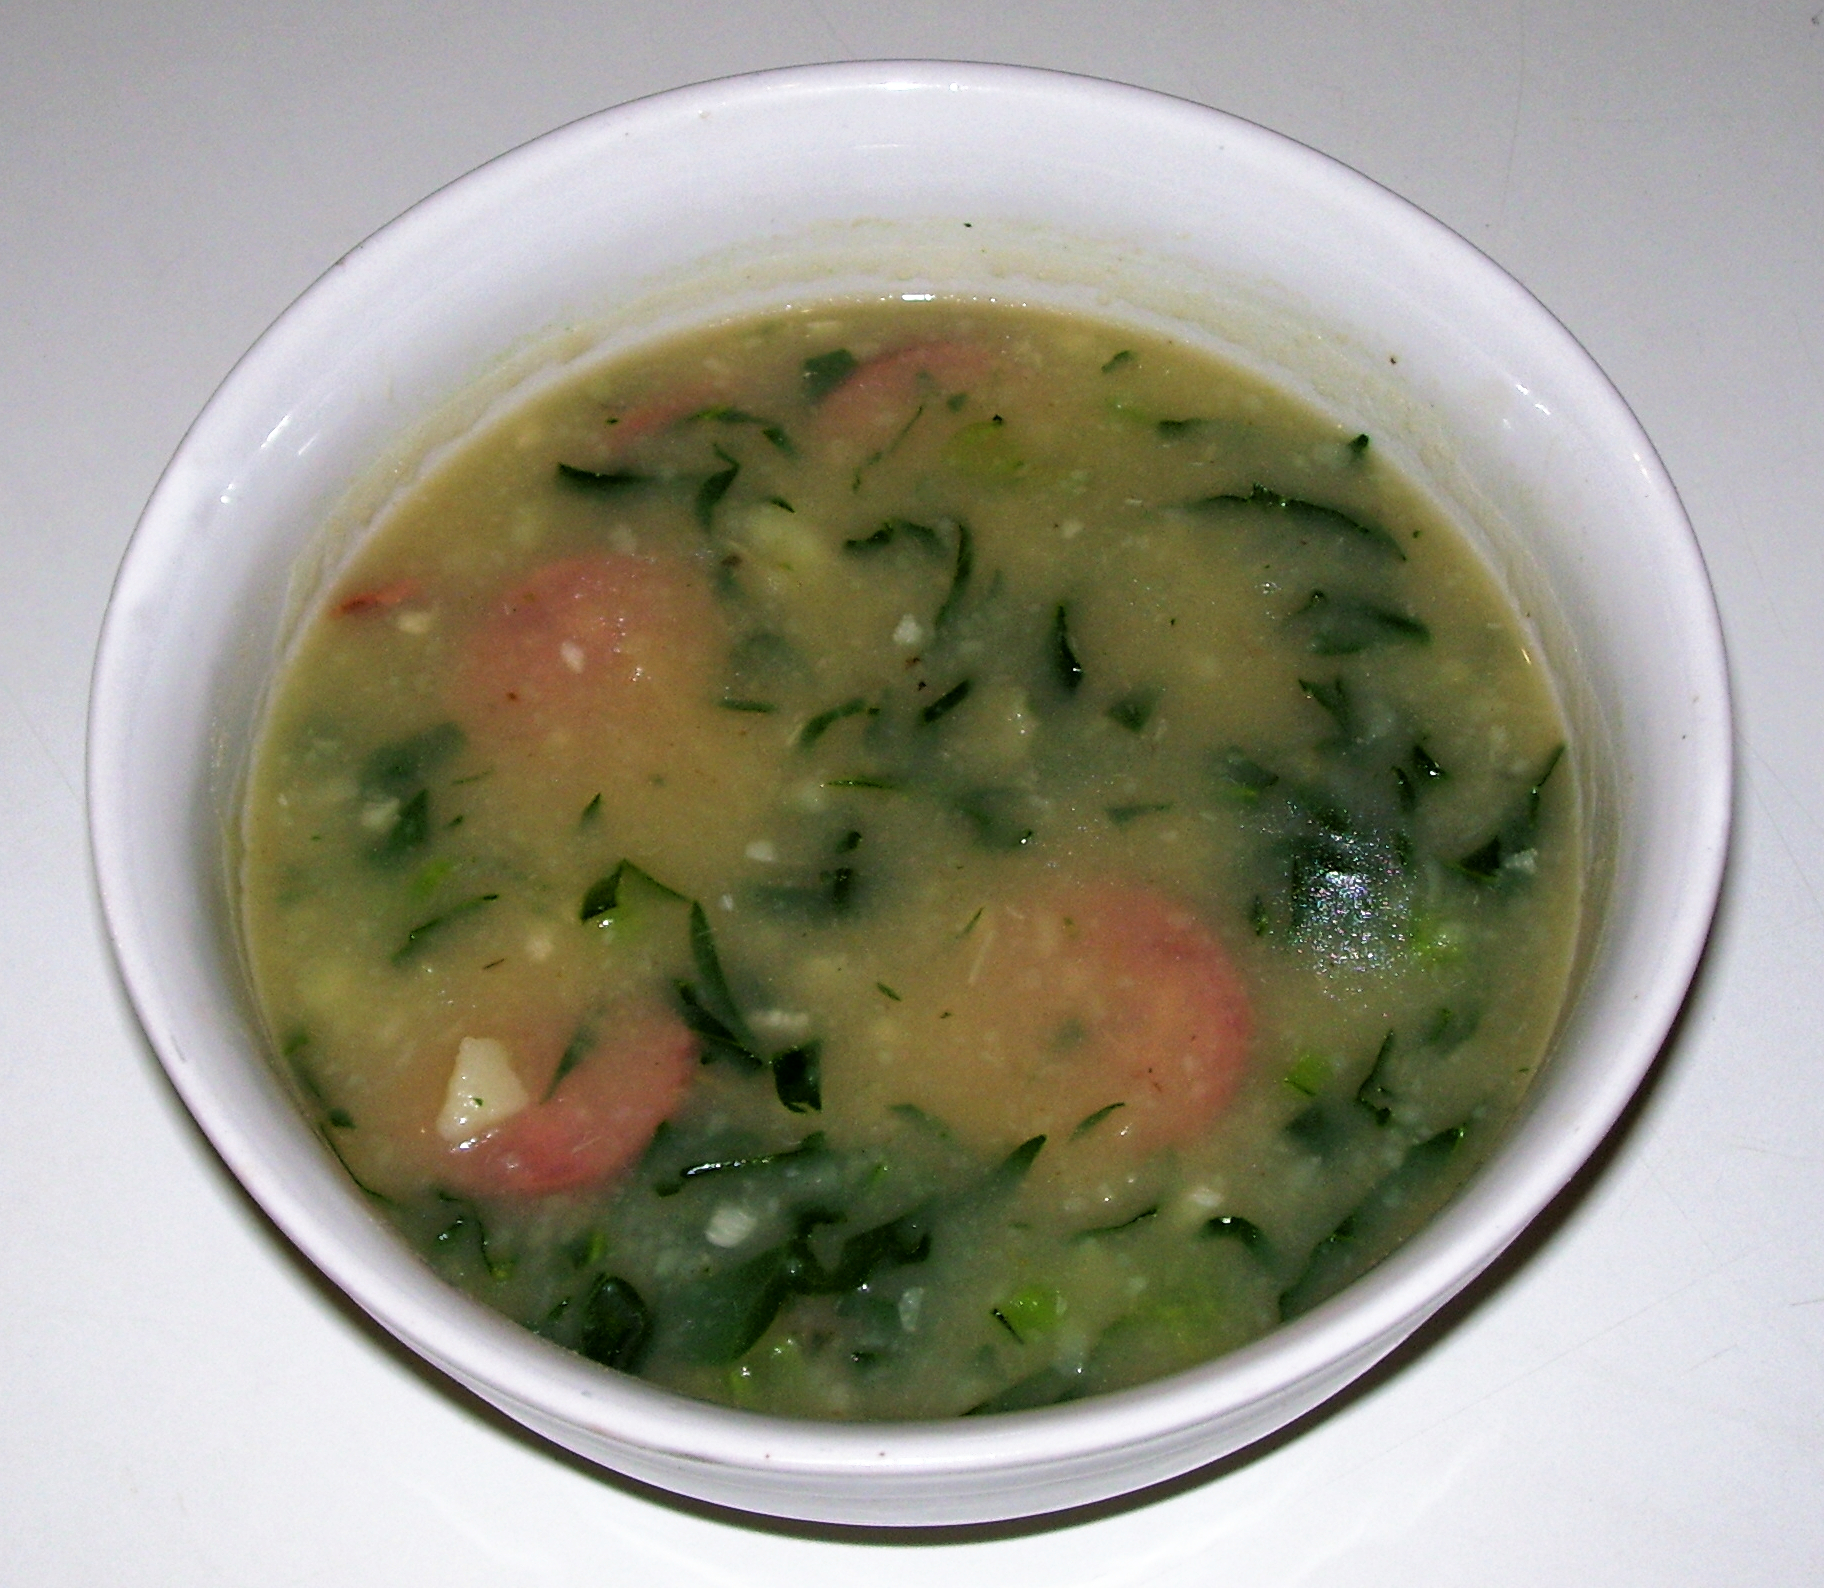 File:Caldo verde.jpg - Wikipedia, the free encyclopedia